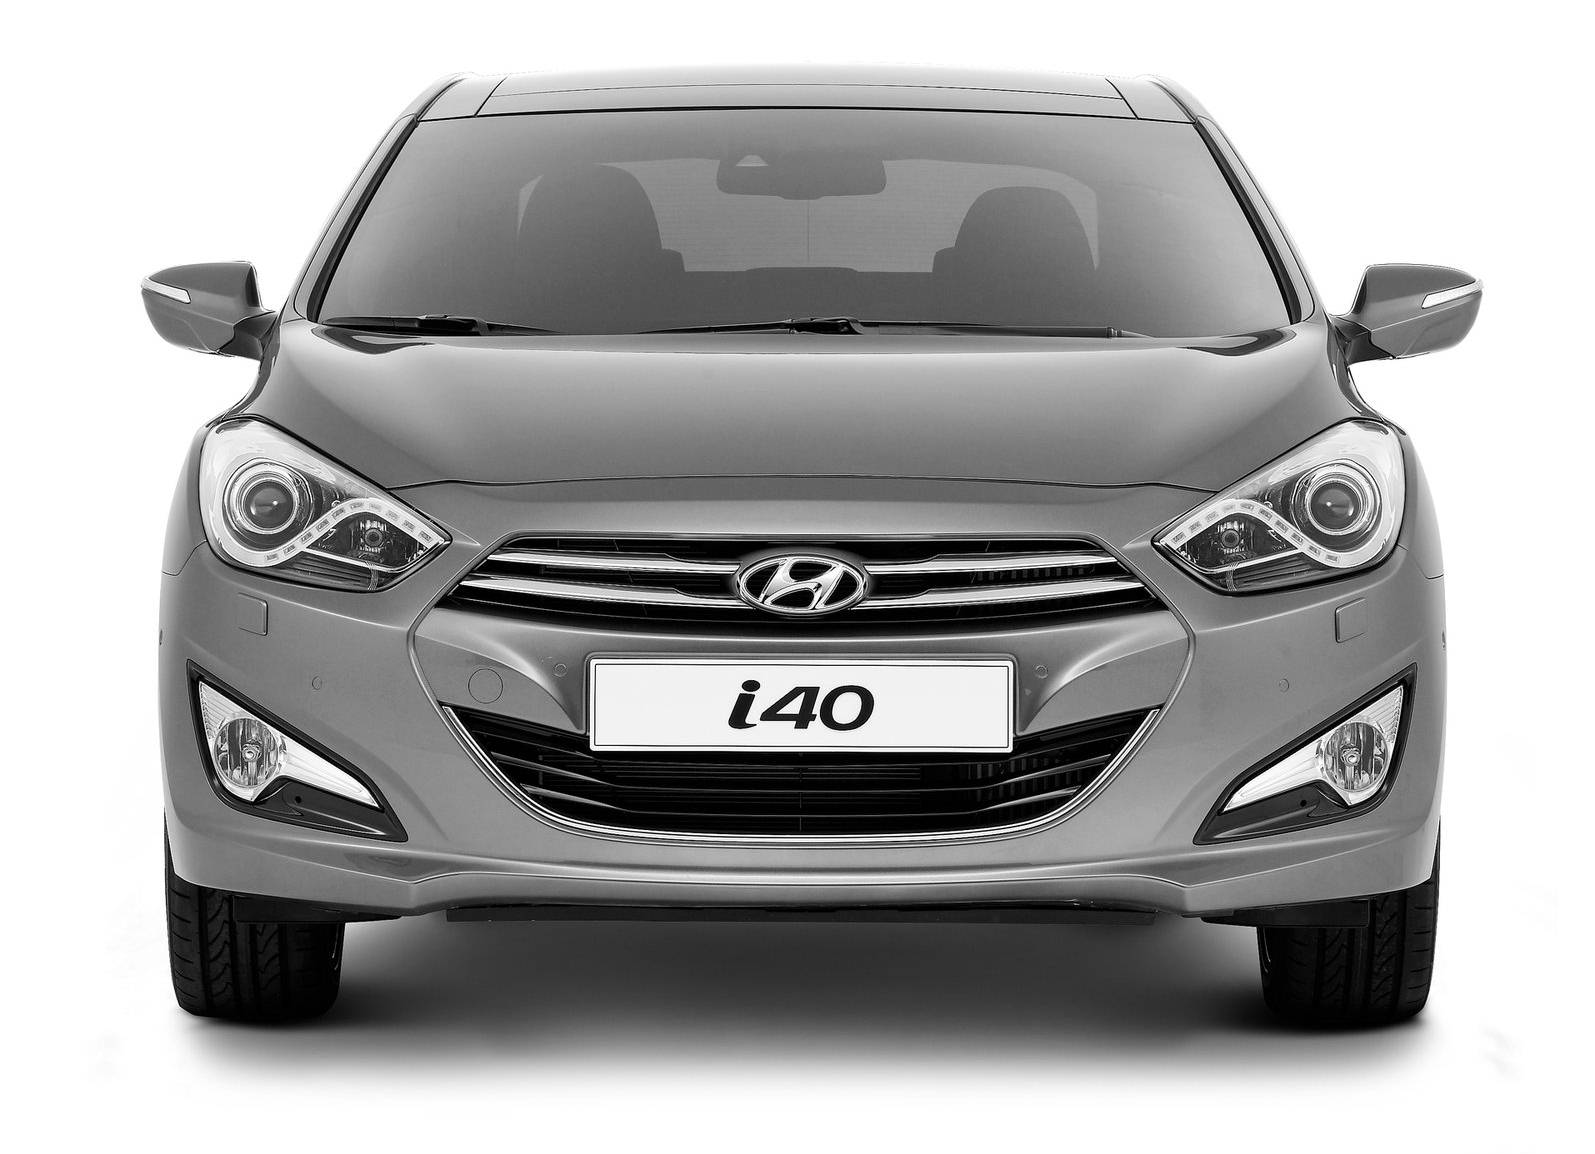 Hyundai i40 - The Beautiful Car